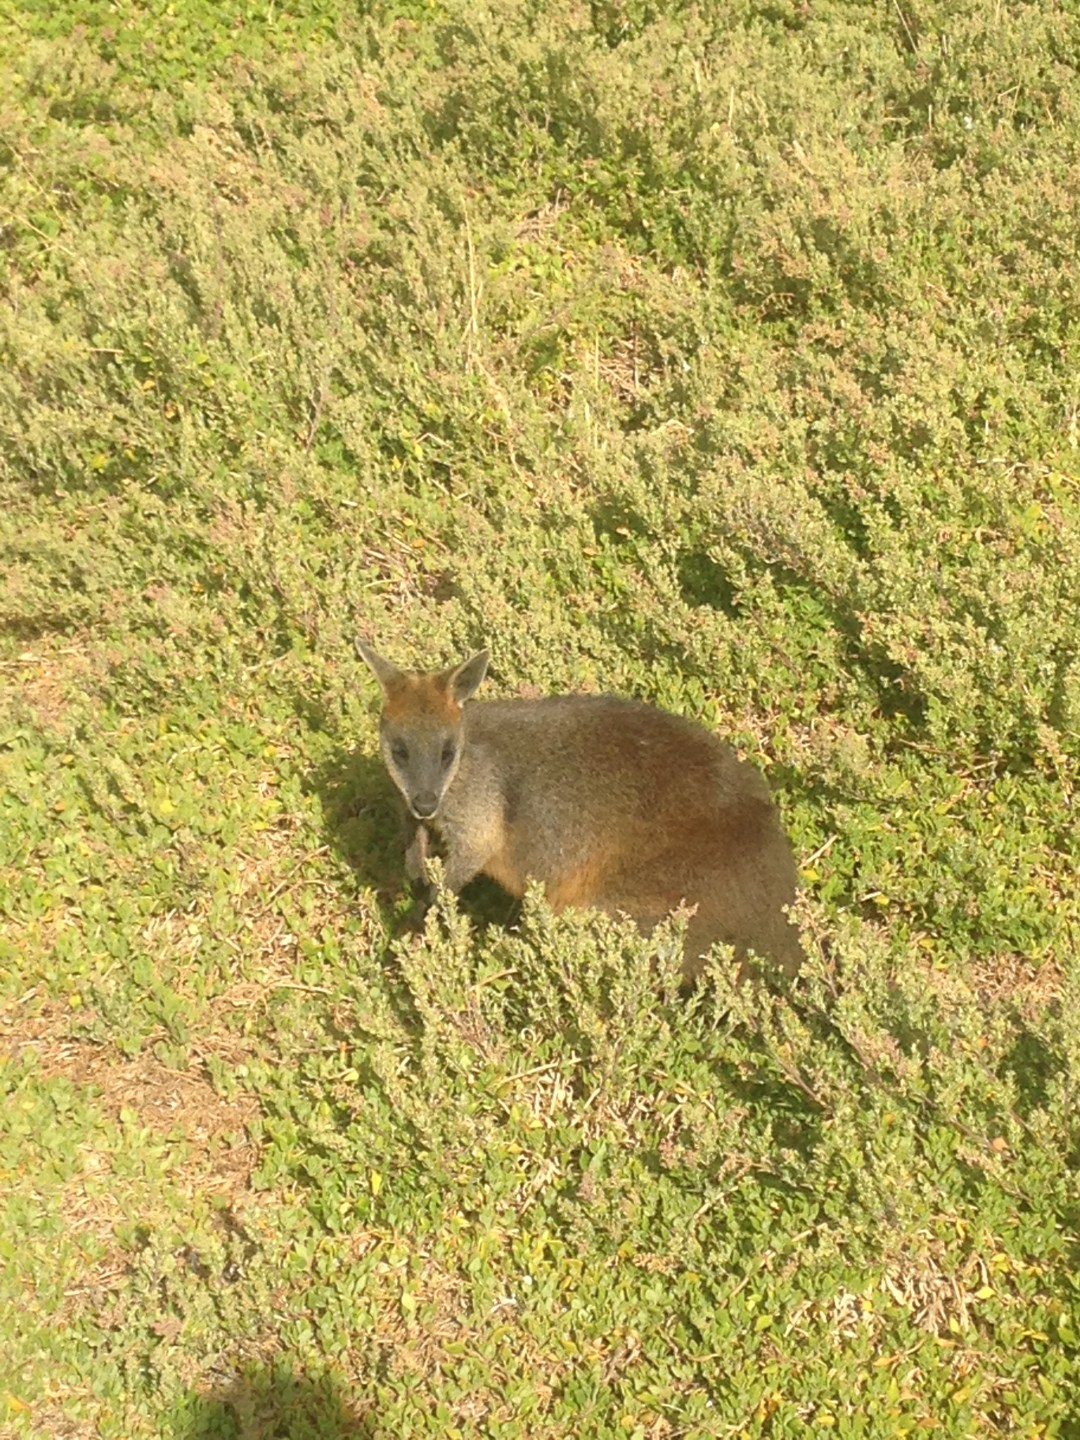 Wild wallaby spotted in the natural bush of Australia